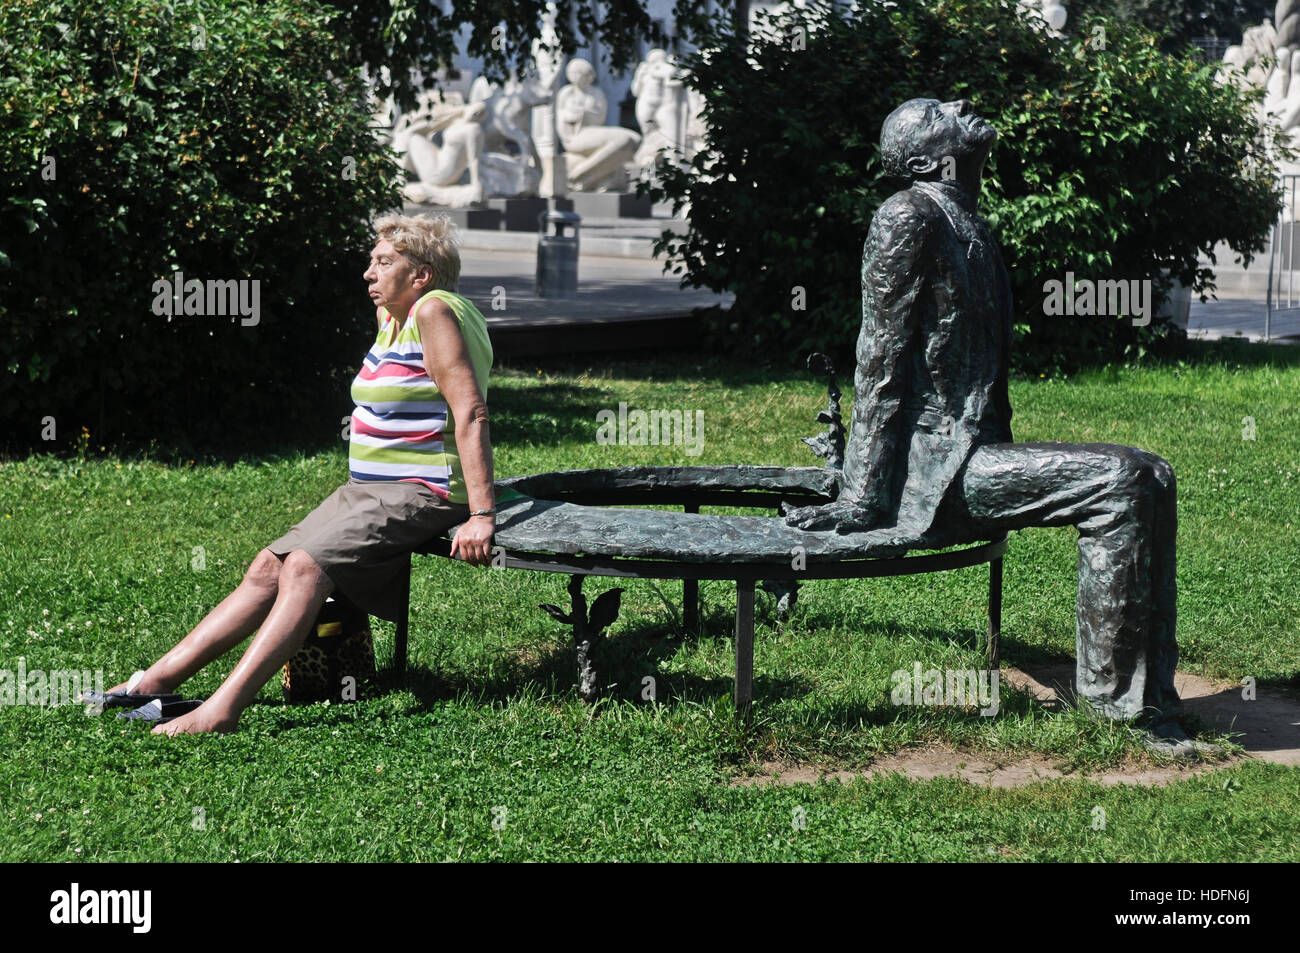 Russian old woman sitting beside a statue, with identical symmetric position and posture - Stock Image